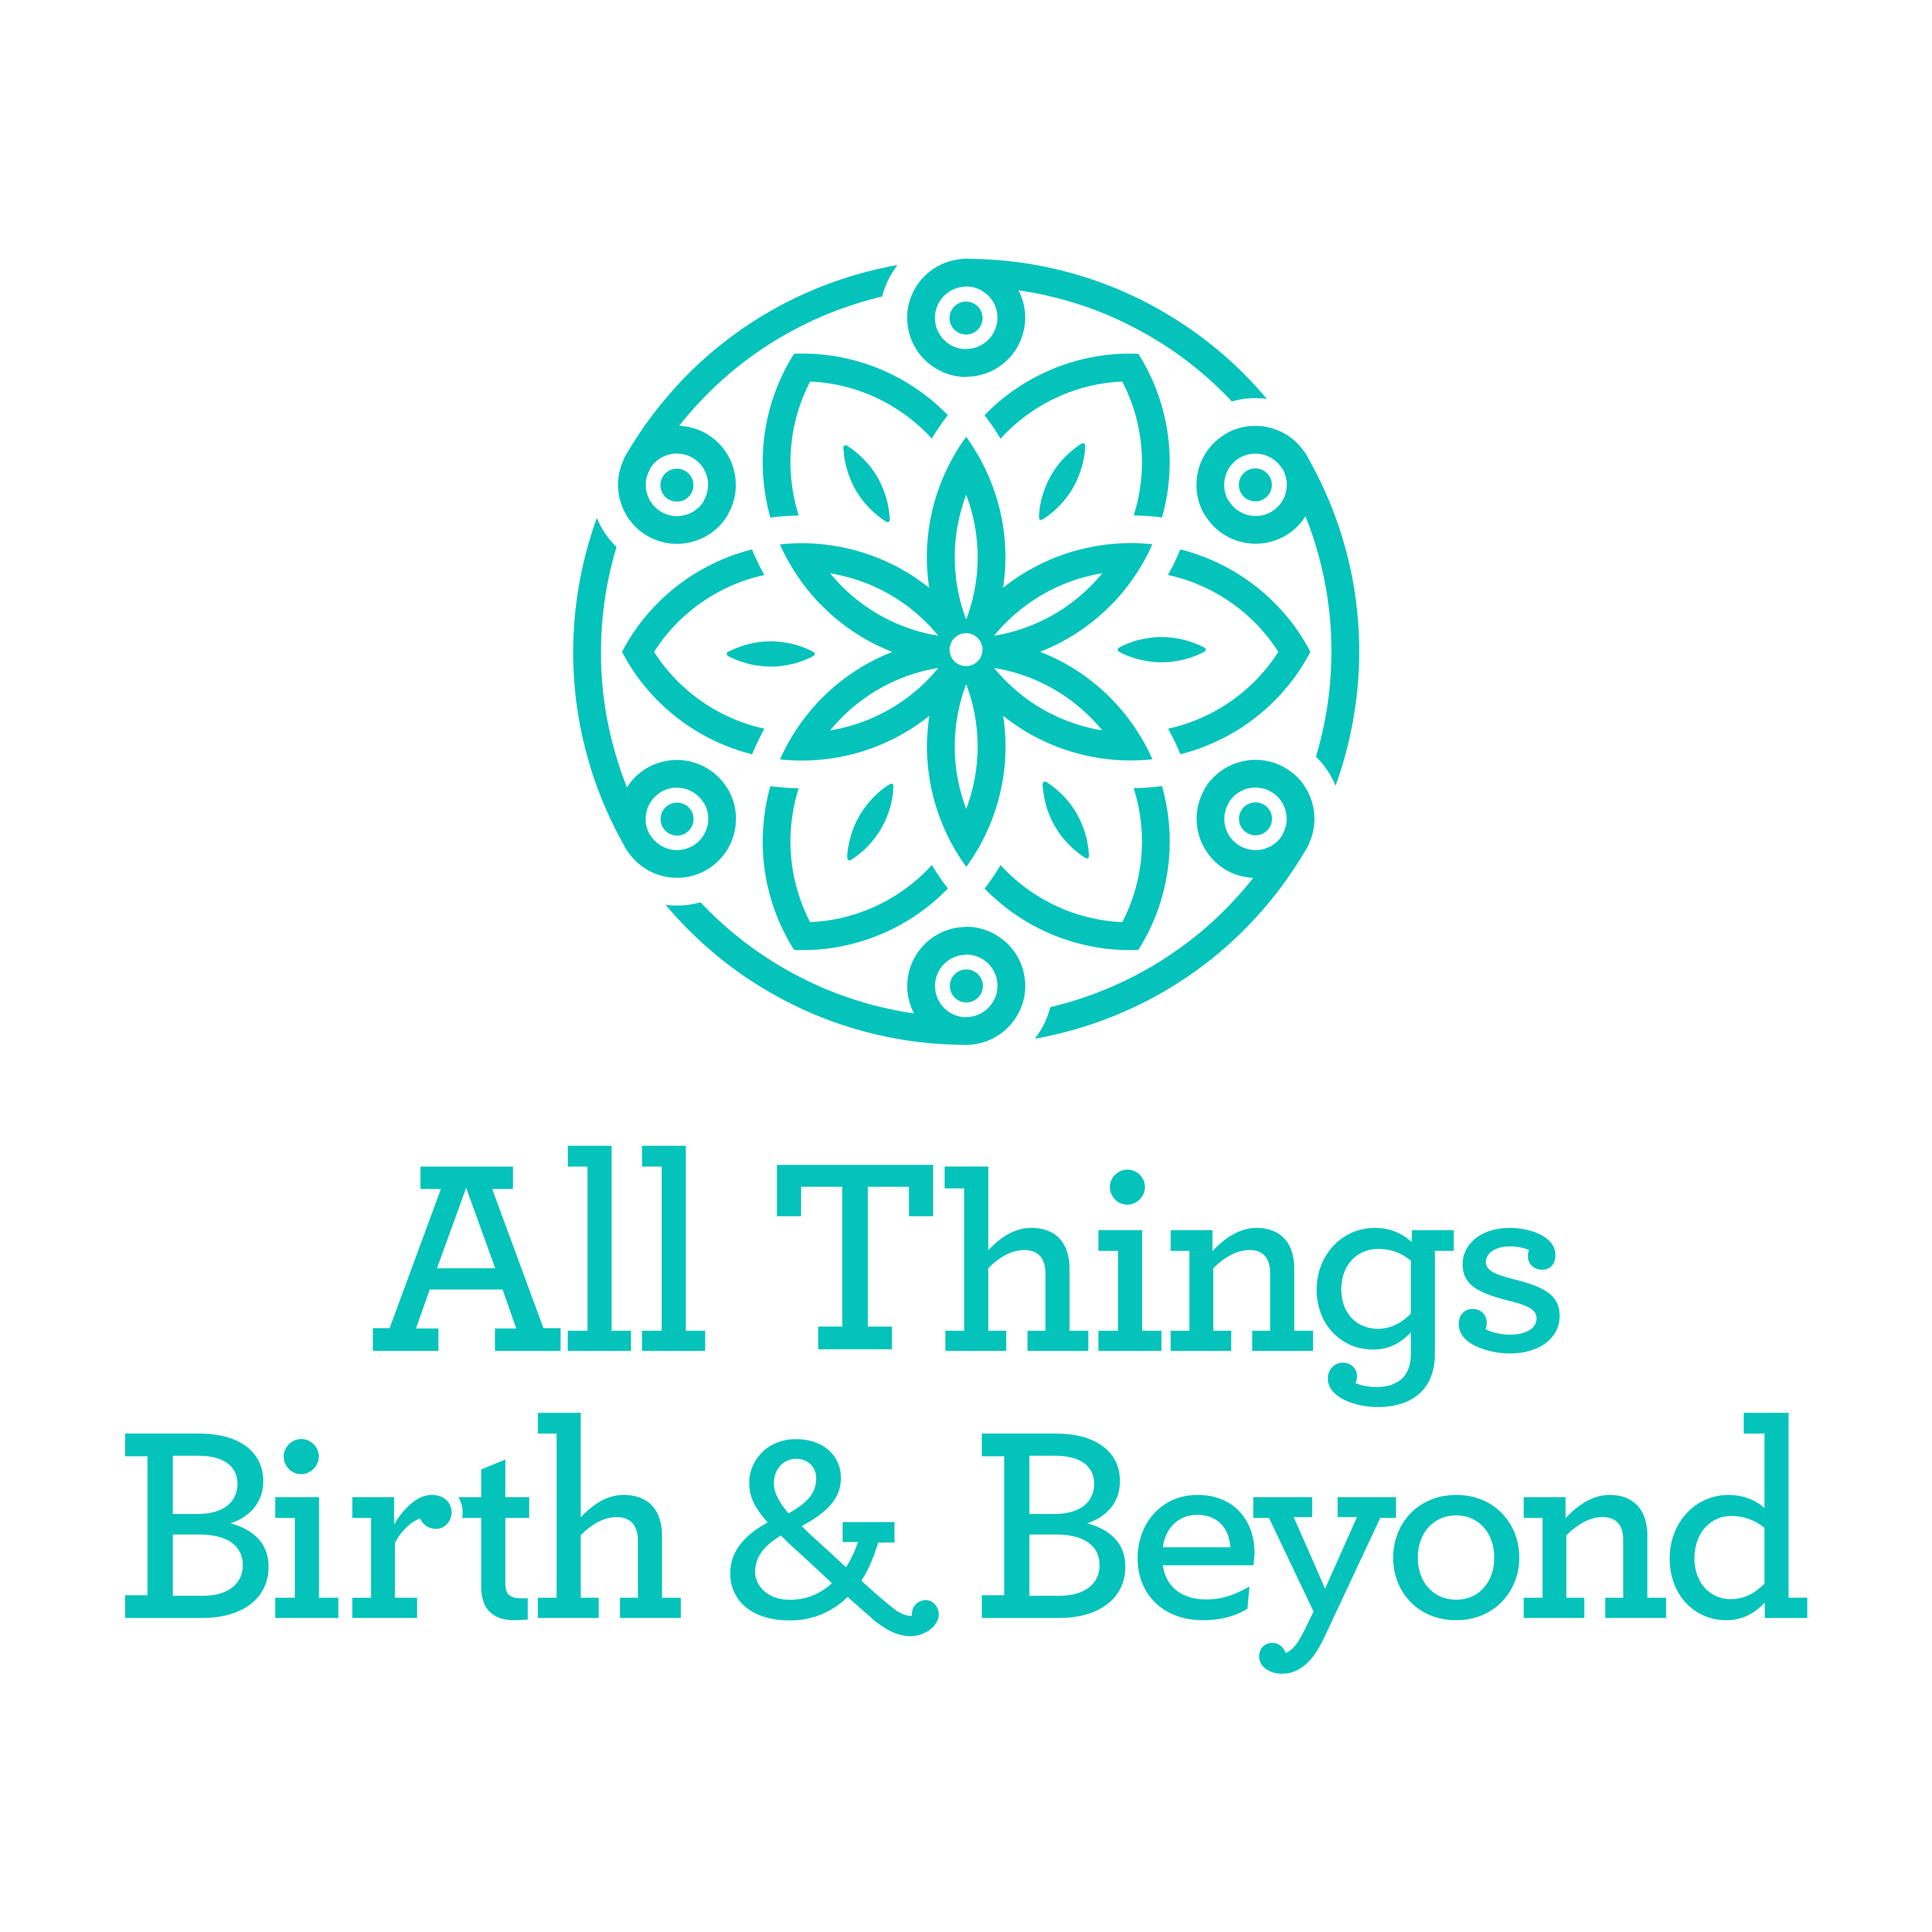 Melody Robinson's All Things Birth & Beyond